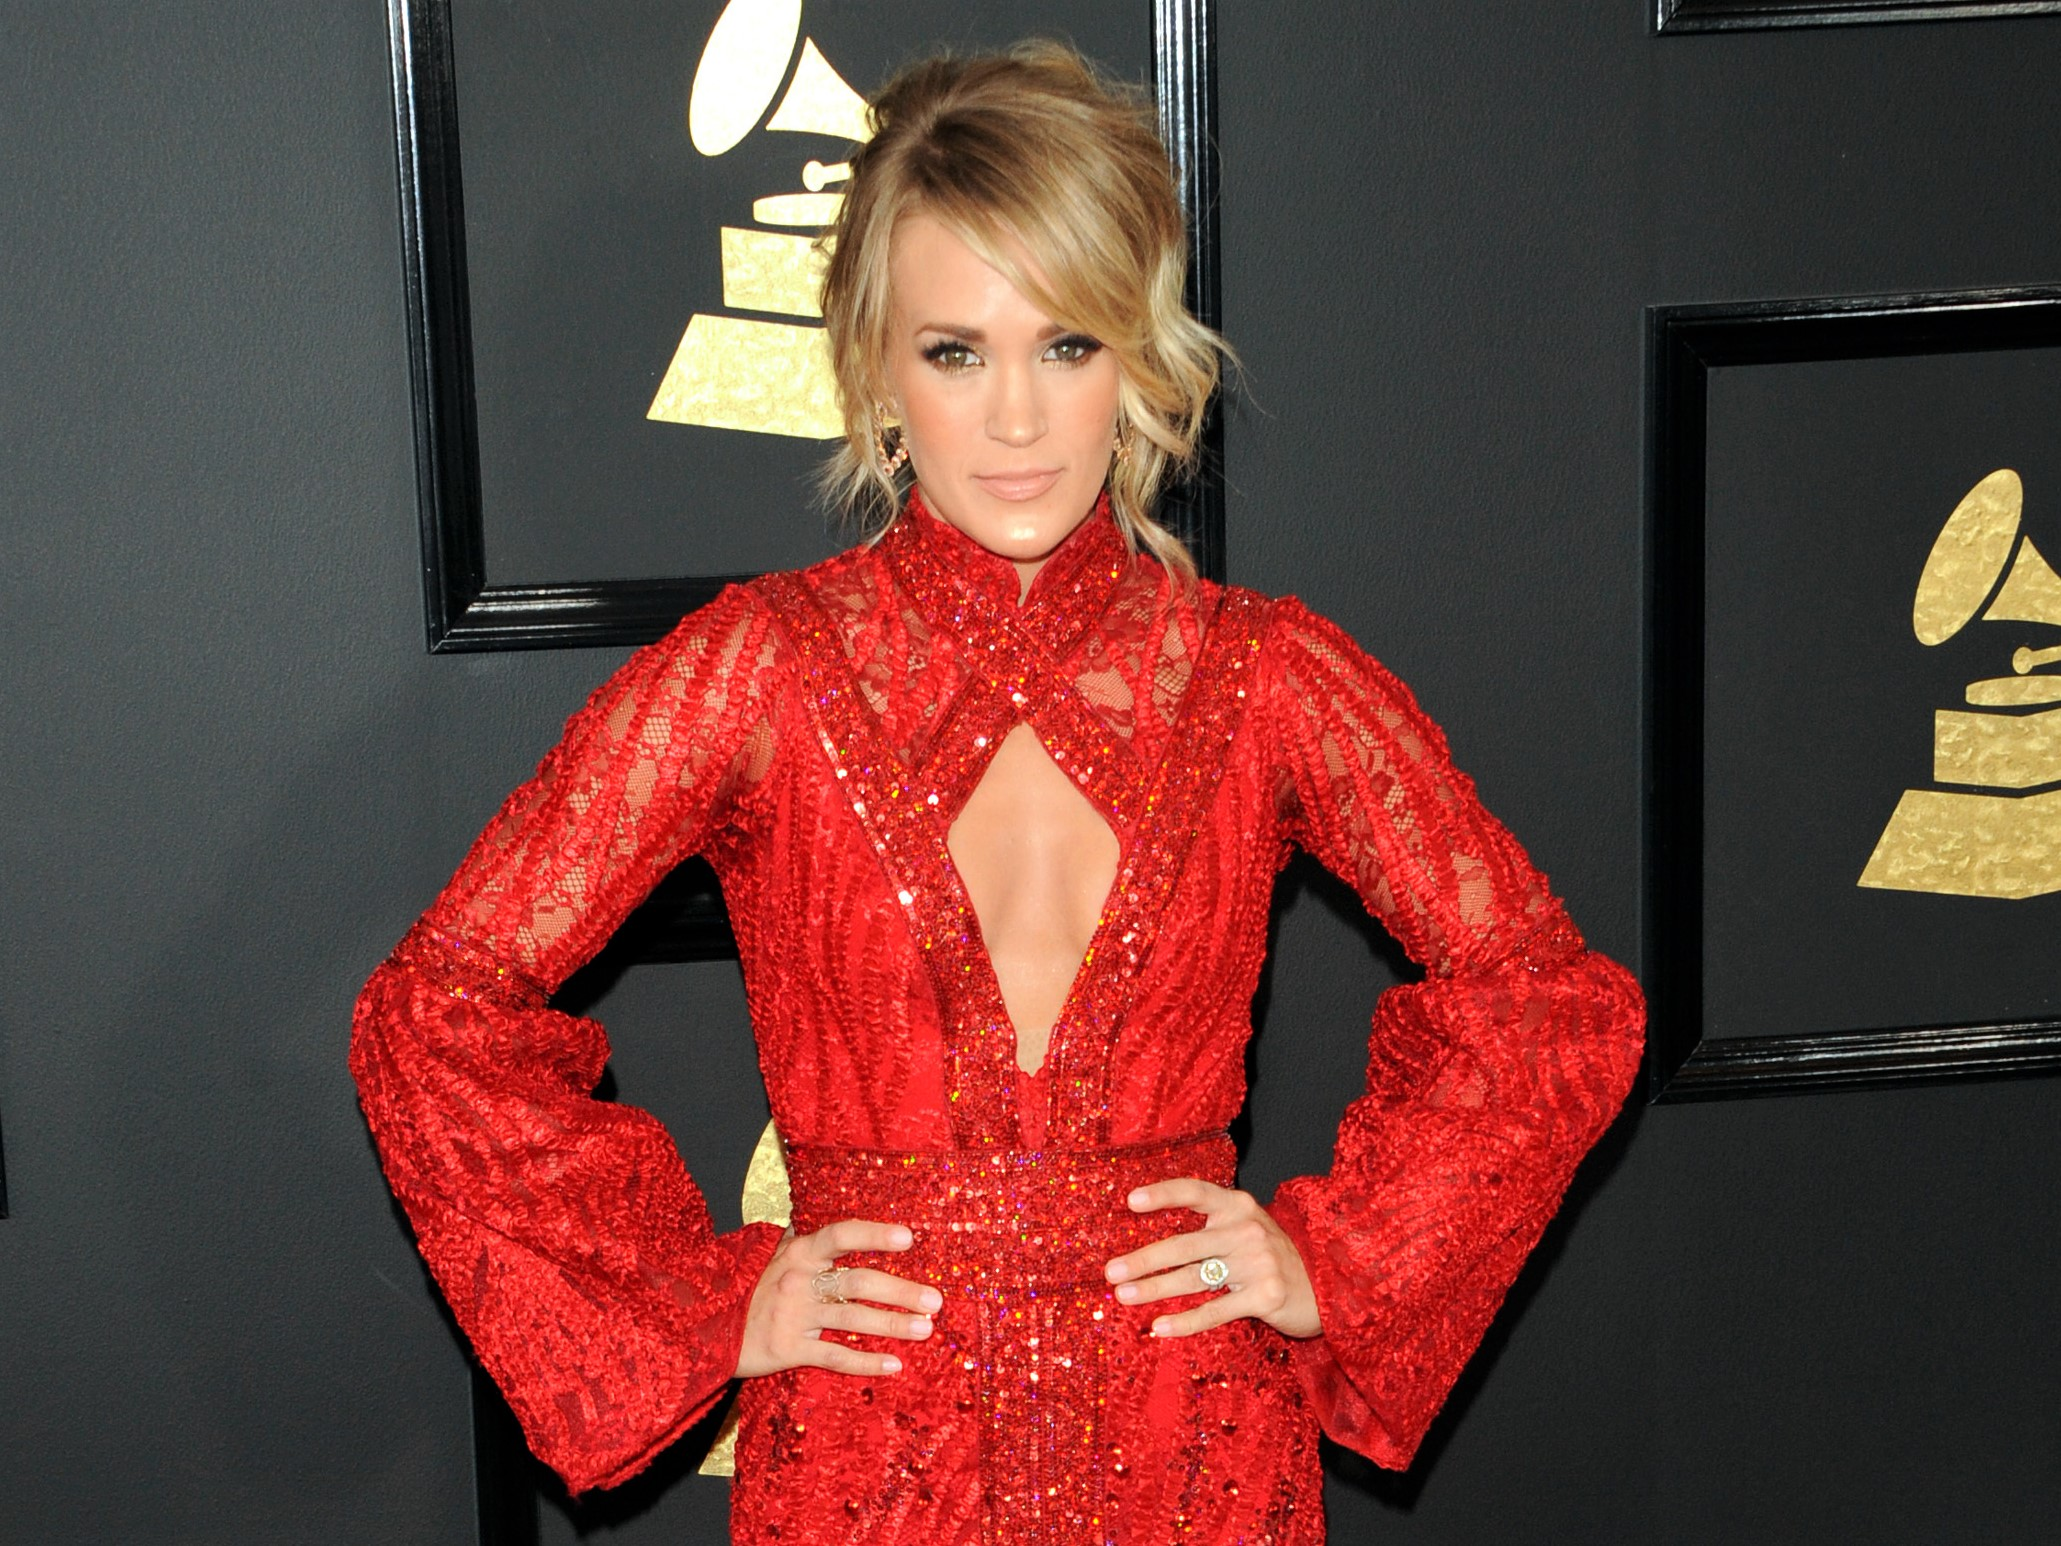 Carrie Underwood Red Dress Grammy's 2017